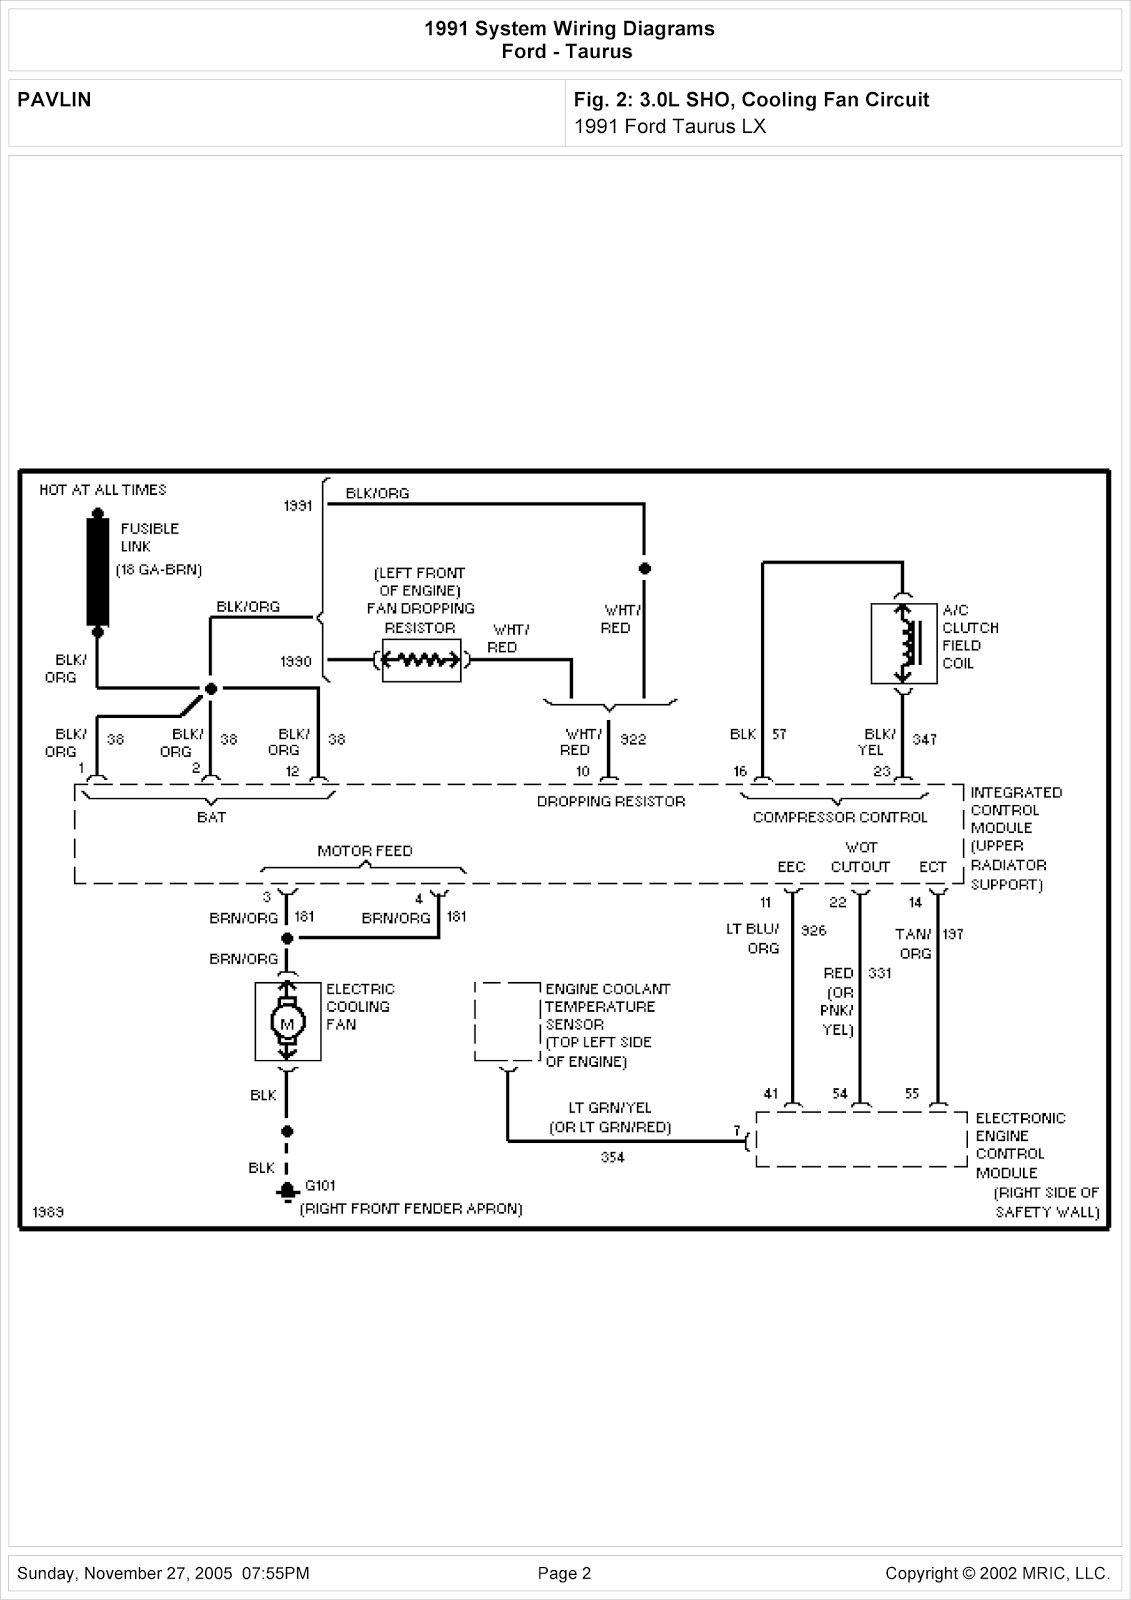 2011 ford taurus wiring diagram 2007 ford taurus wiring diagram for radio 1999 ford taurus system wiring diagram cooling fan circuit ...